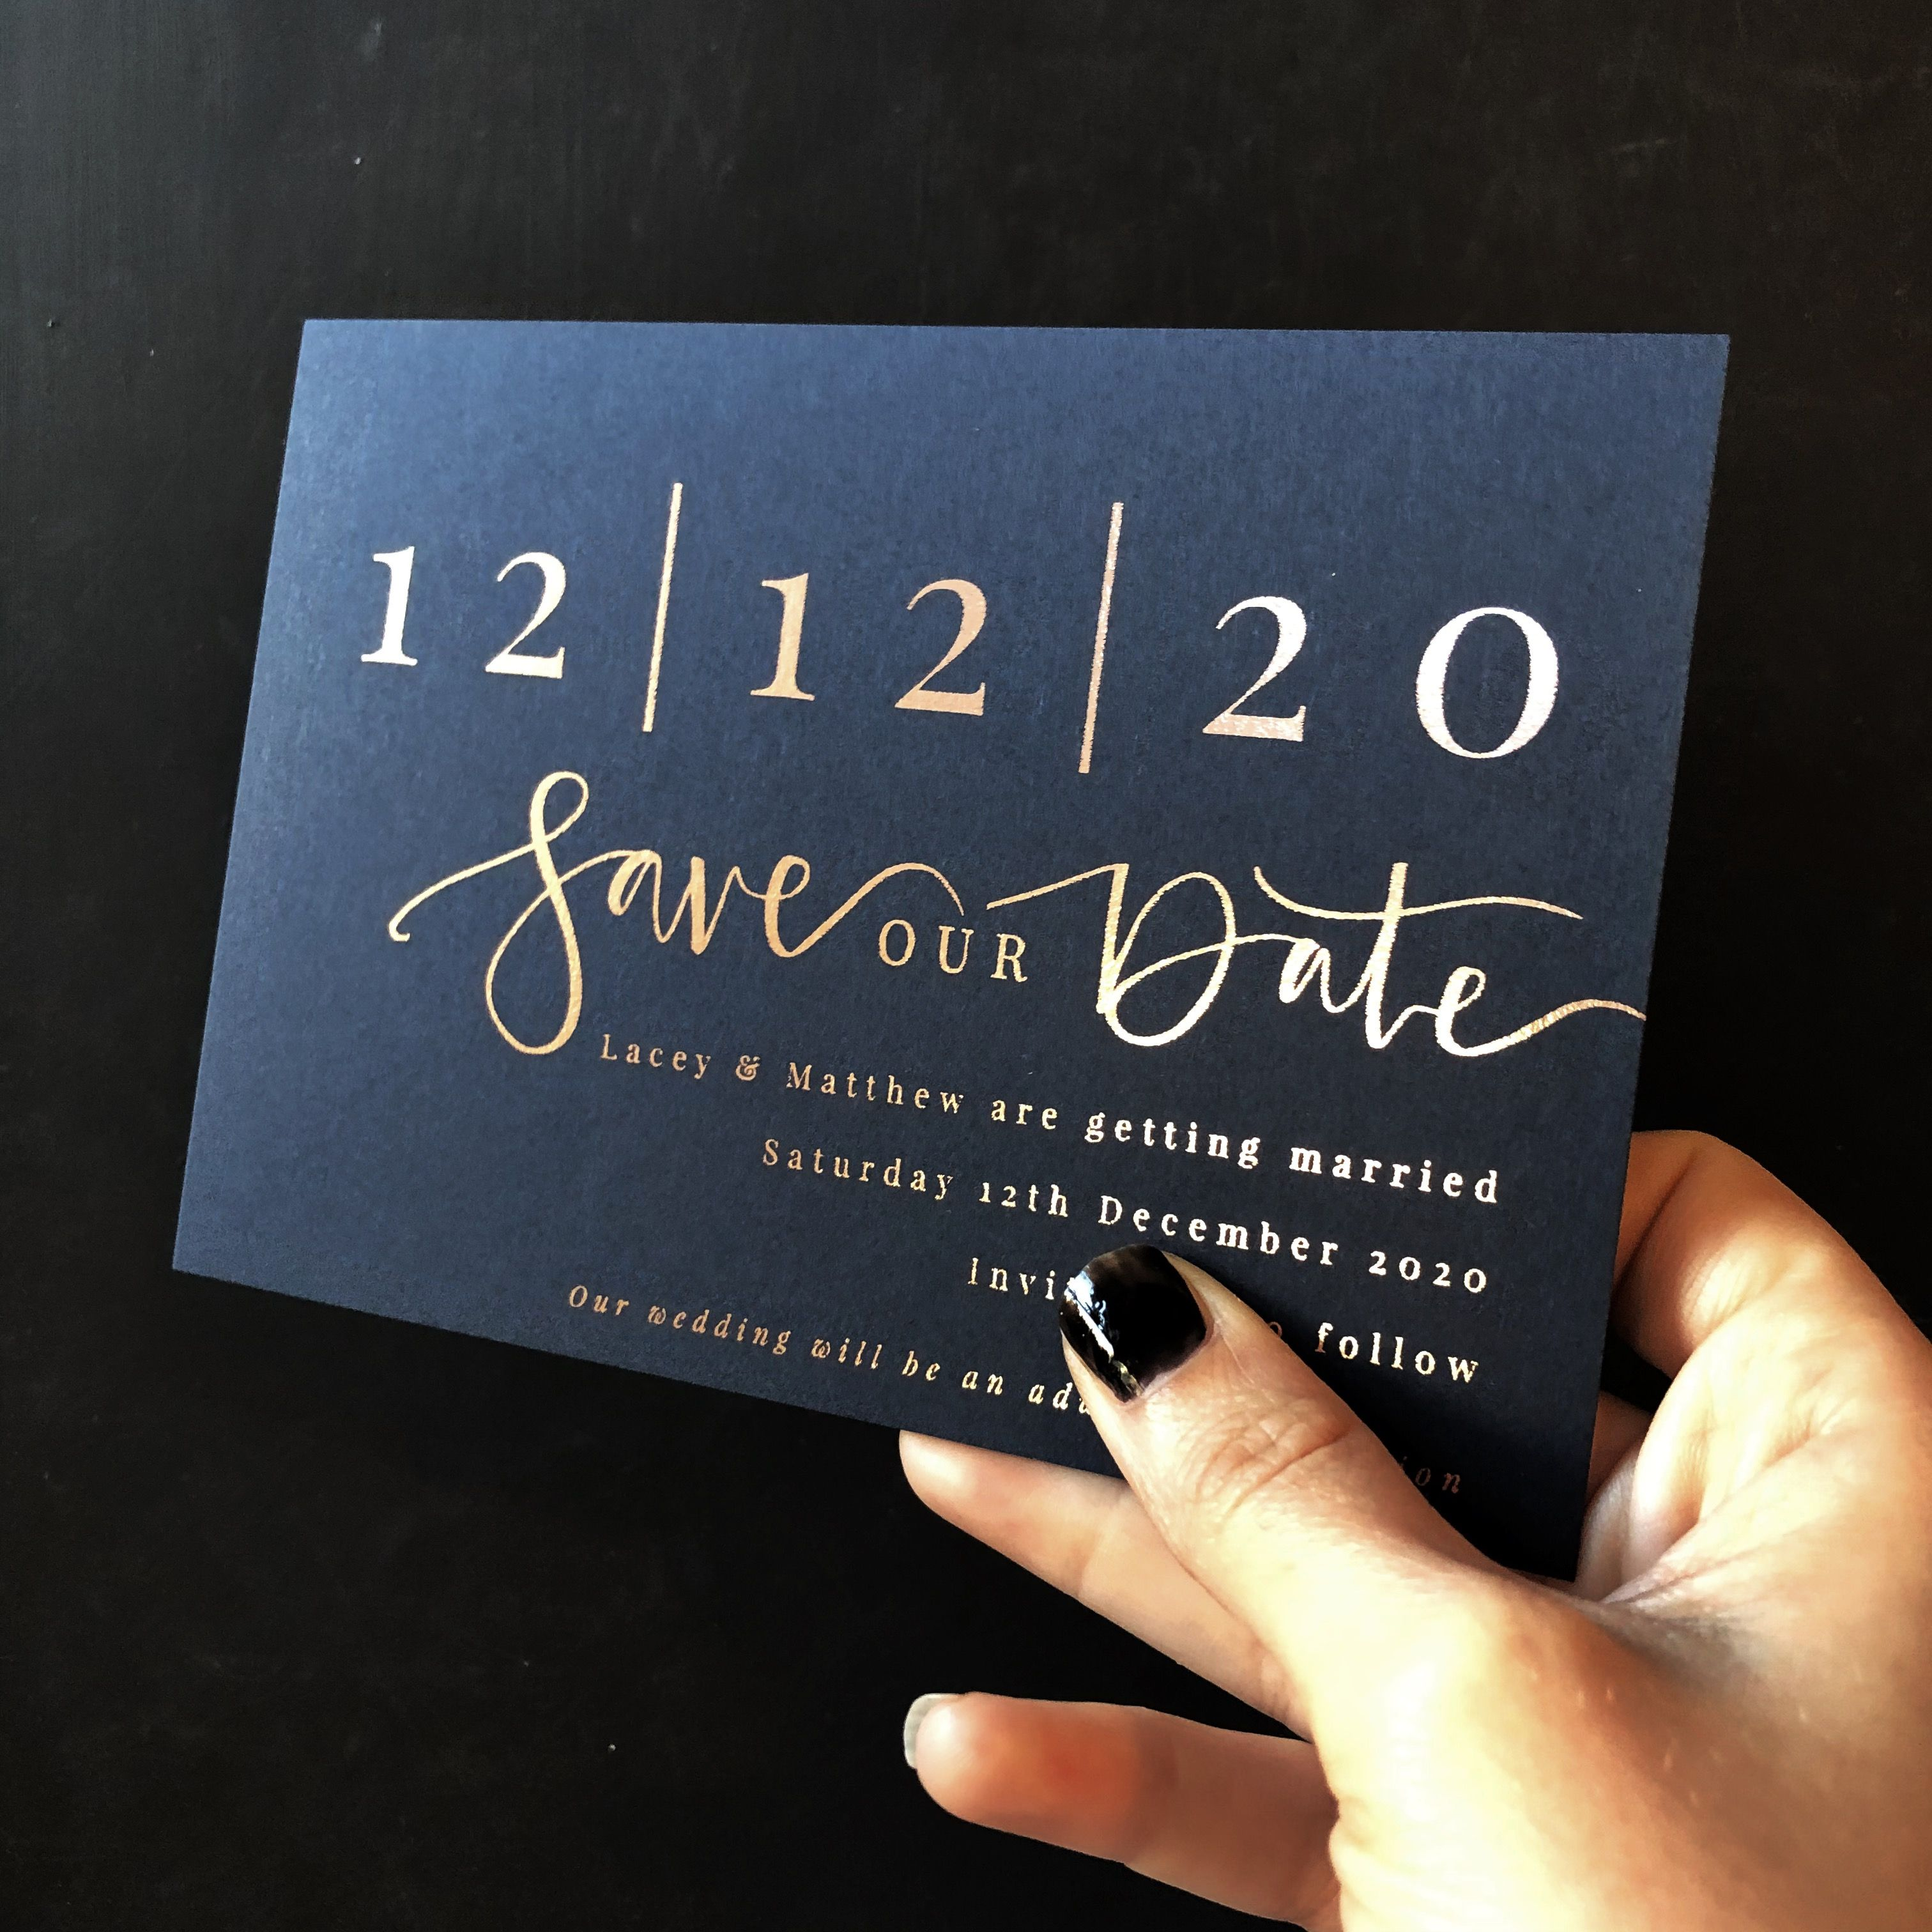 How to Order your Wedding Stationery | The Golden Letter, London